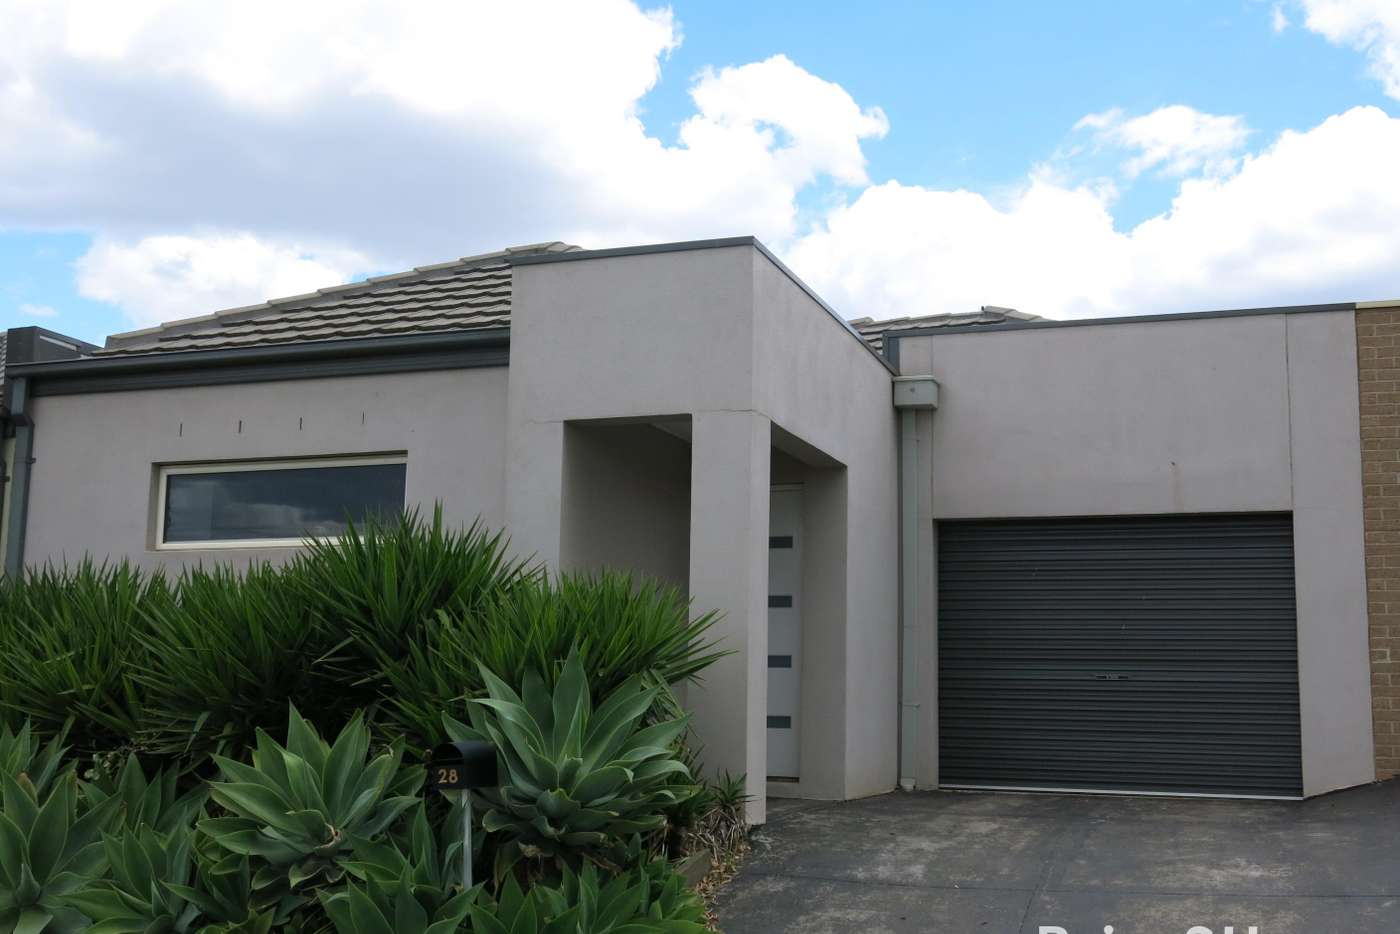 Main view of Homely house listing, 28/40 McCubbin Way, Caroline Springs VIC 3023